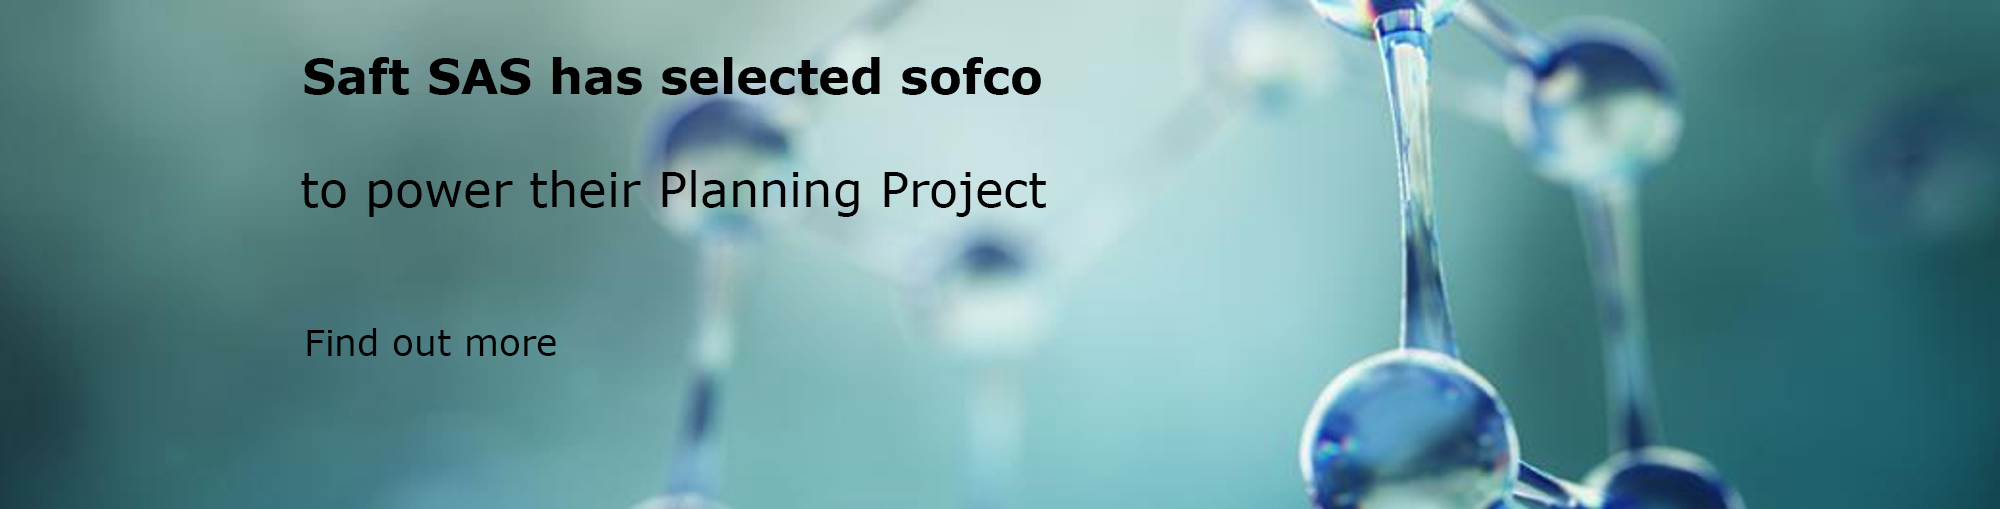 Saft has selected sofco